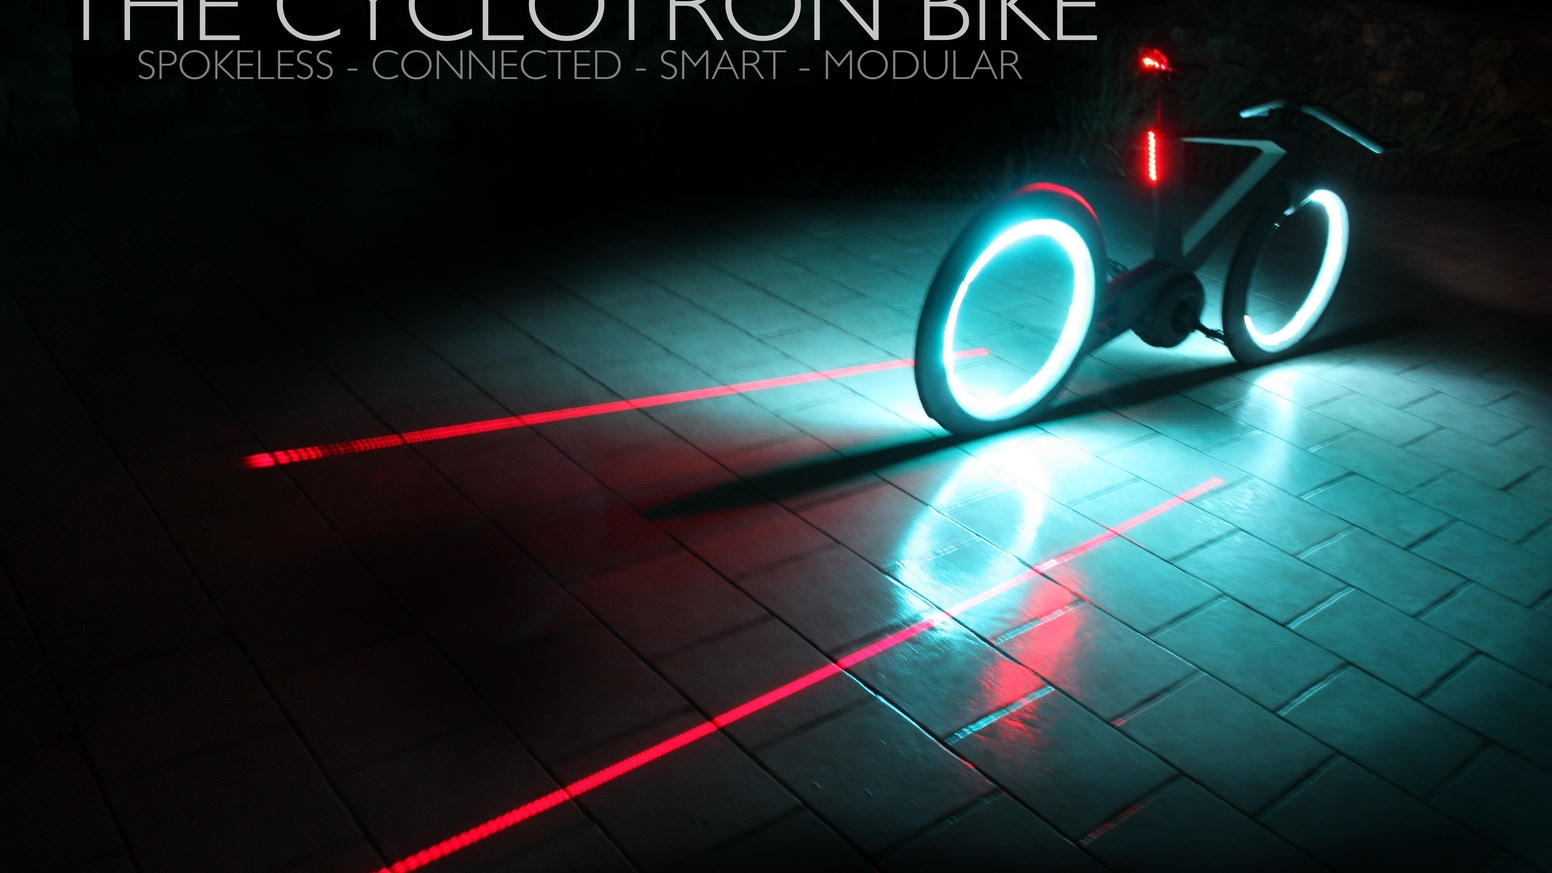 The Cyclotron Bike Revolutionary Spokeless Smart Cycle